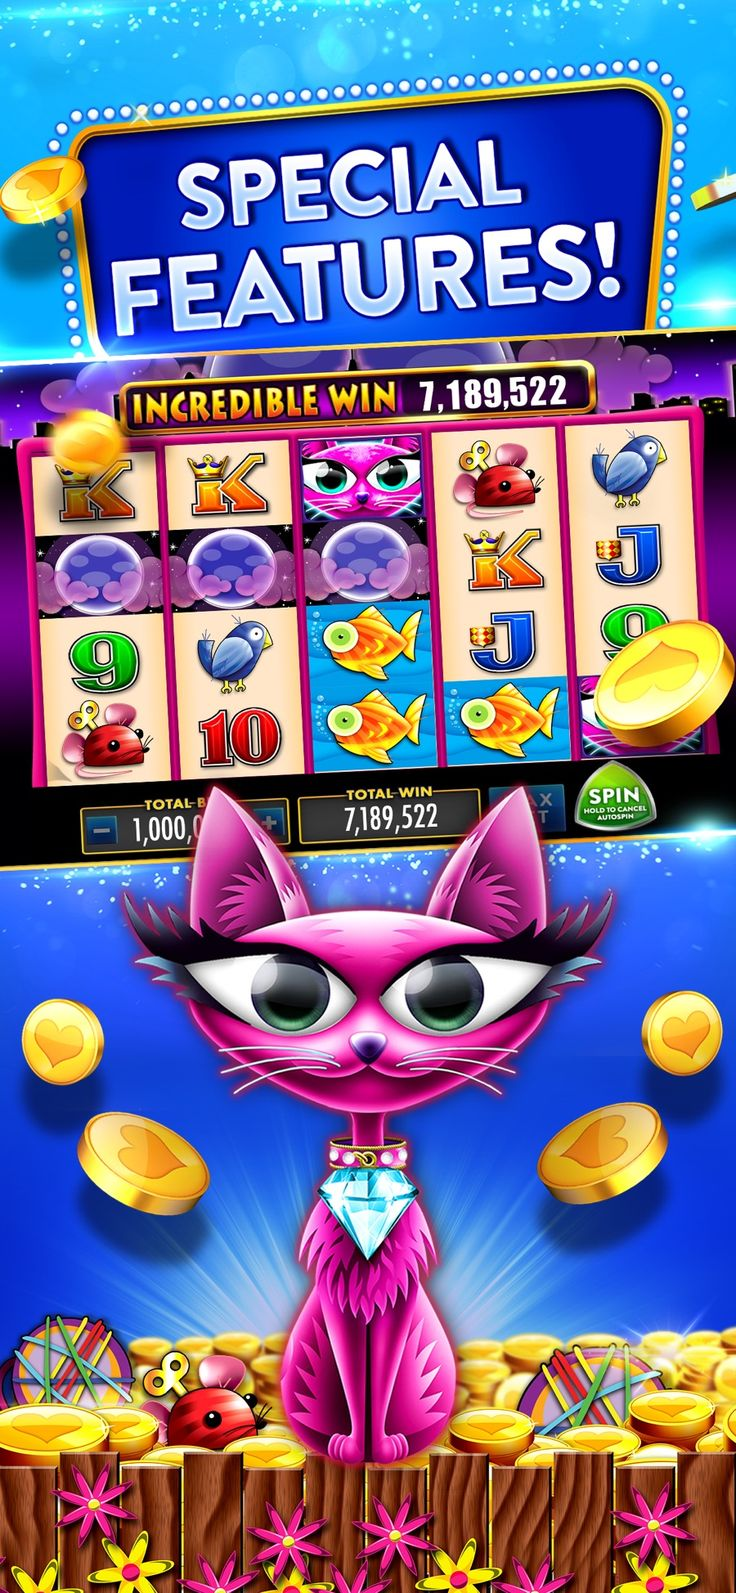 Enjoy The Casino Zeppelin Slots With No Download